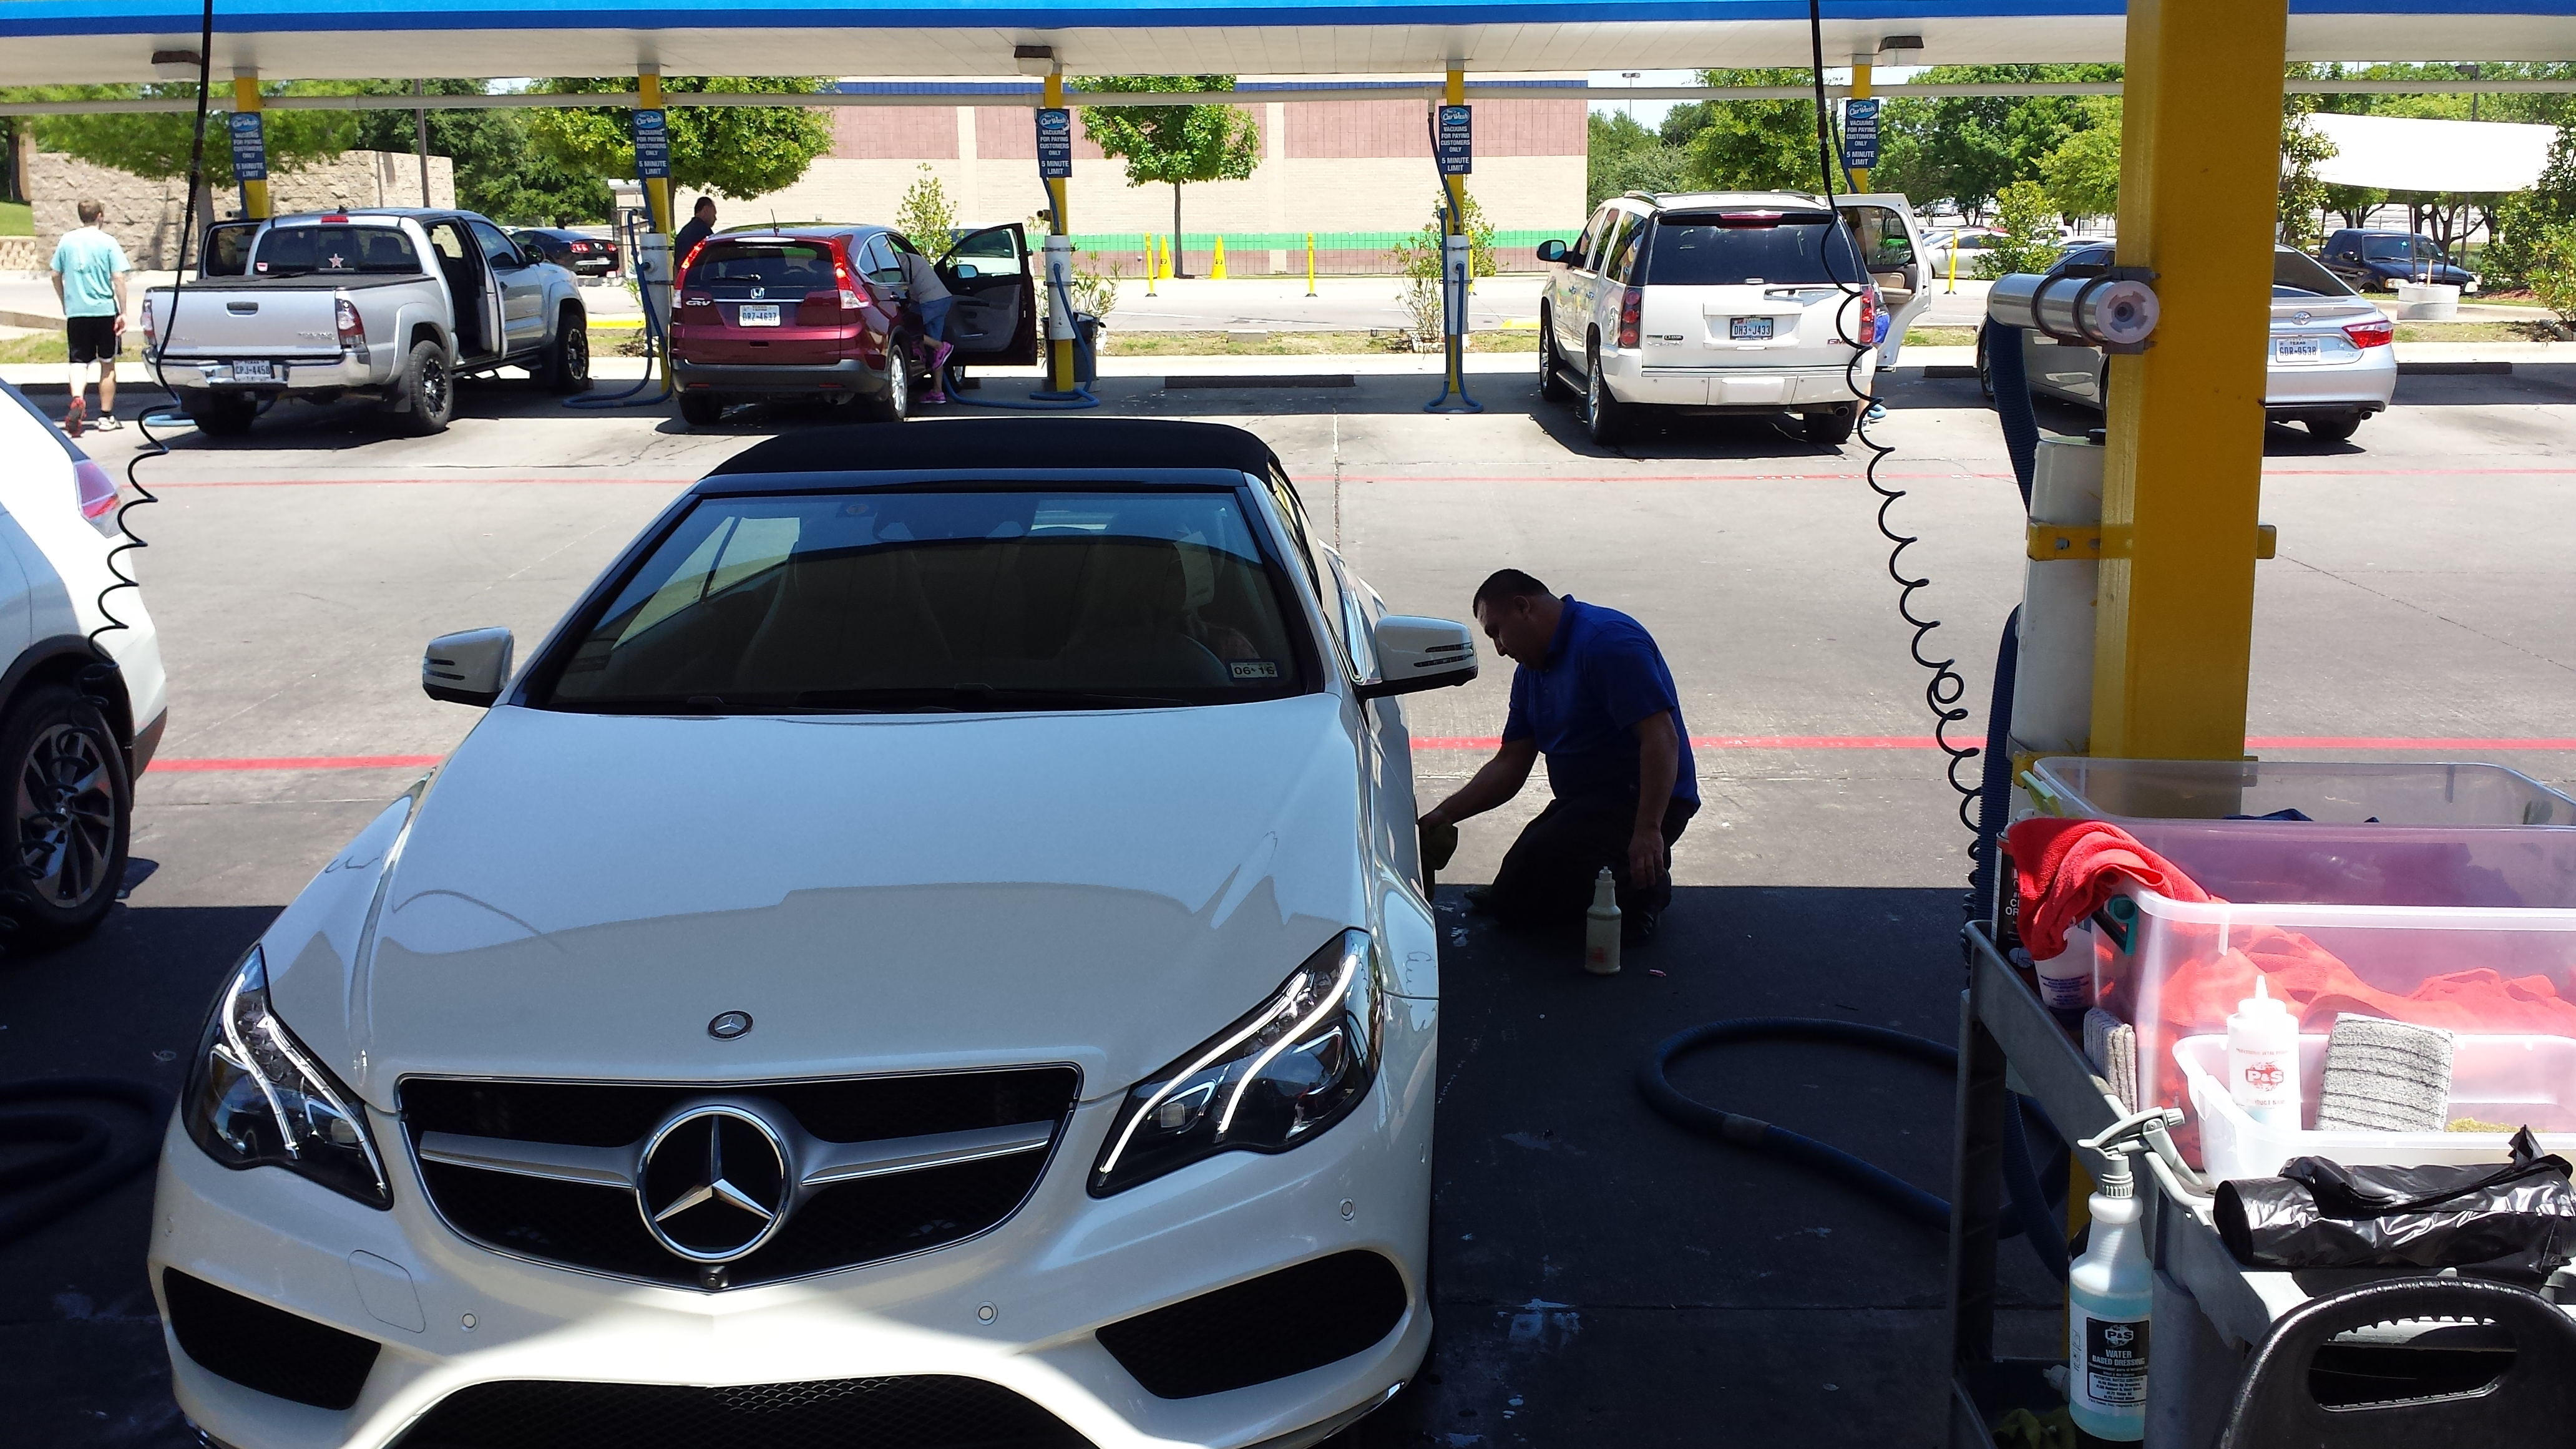 Docs car wash car wash does not apply to fast passes solutioingenieria Choice Image